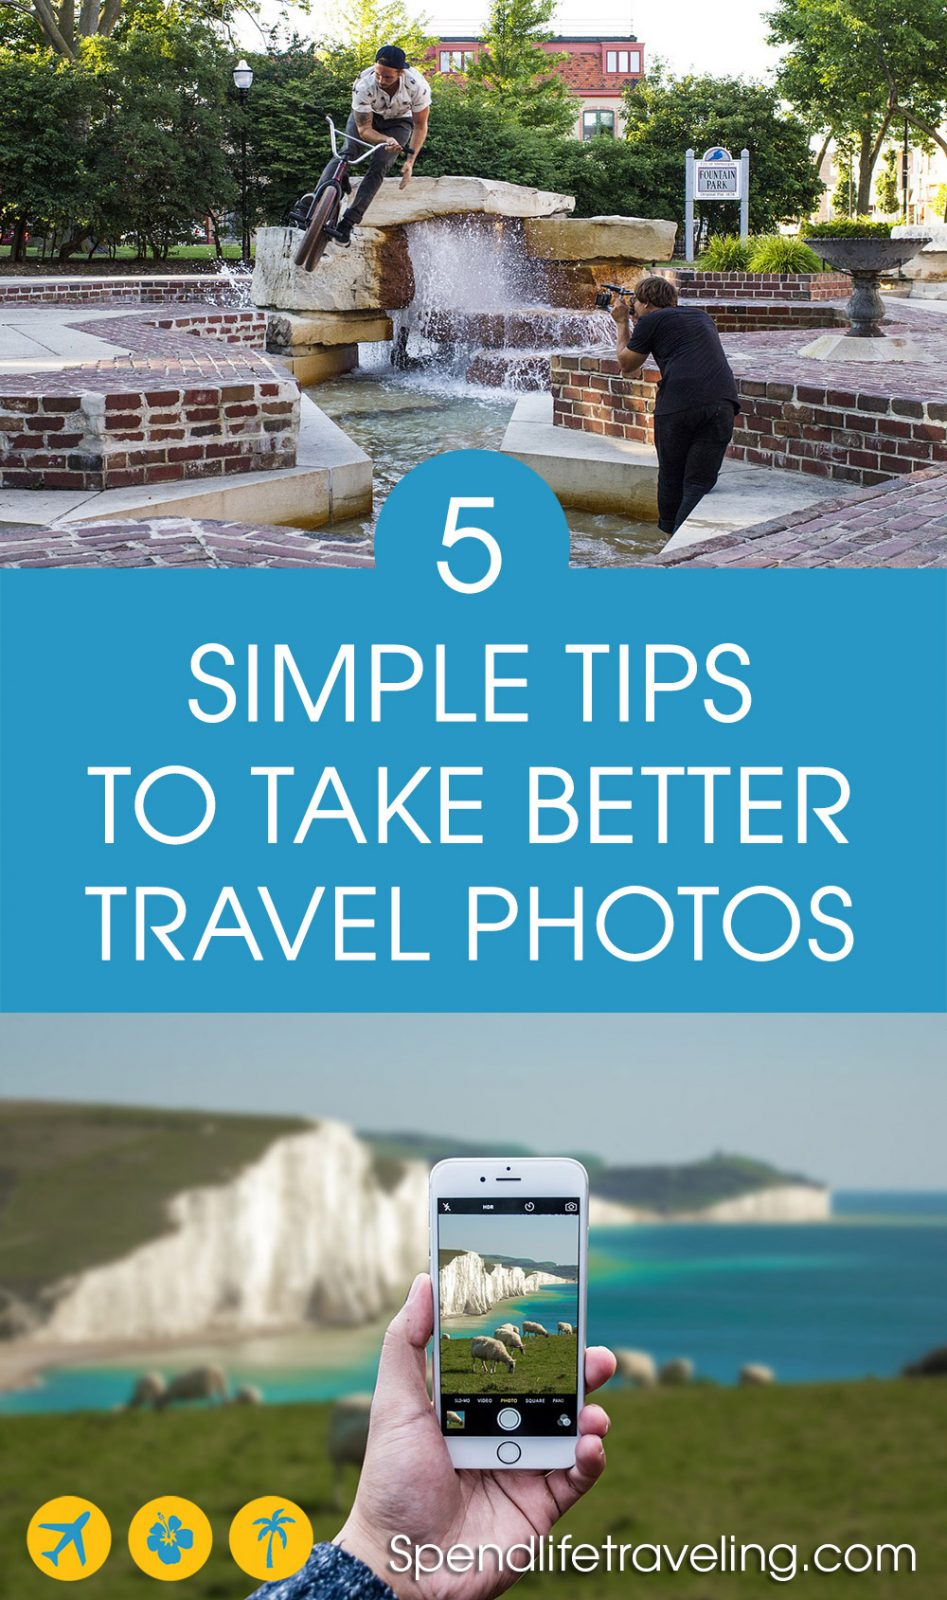 Would you like to take better travel photos? But you don't know where to start? Check out these 5 easy tips which also work perfectly for smartphone #photography. Travel photography isn't difficult! #photographytips #travelphotography #besttravelpictures #travelphotos